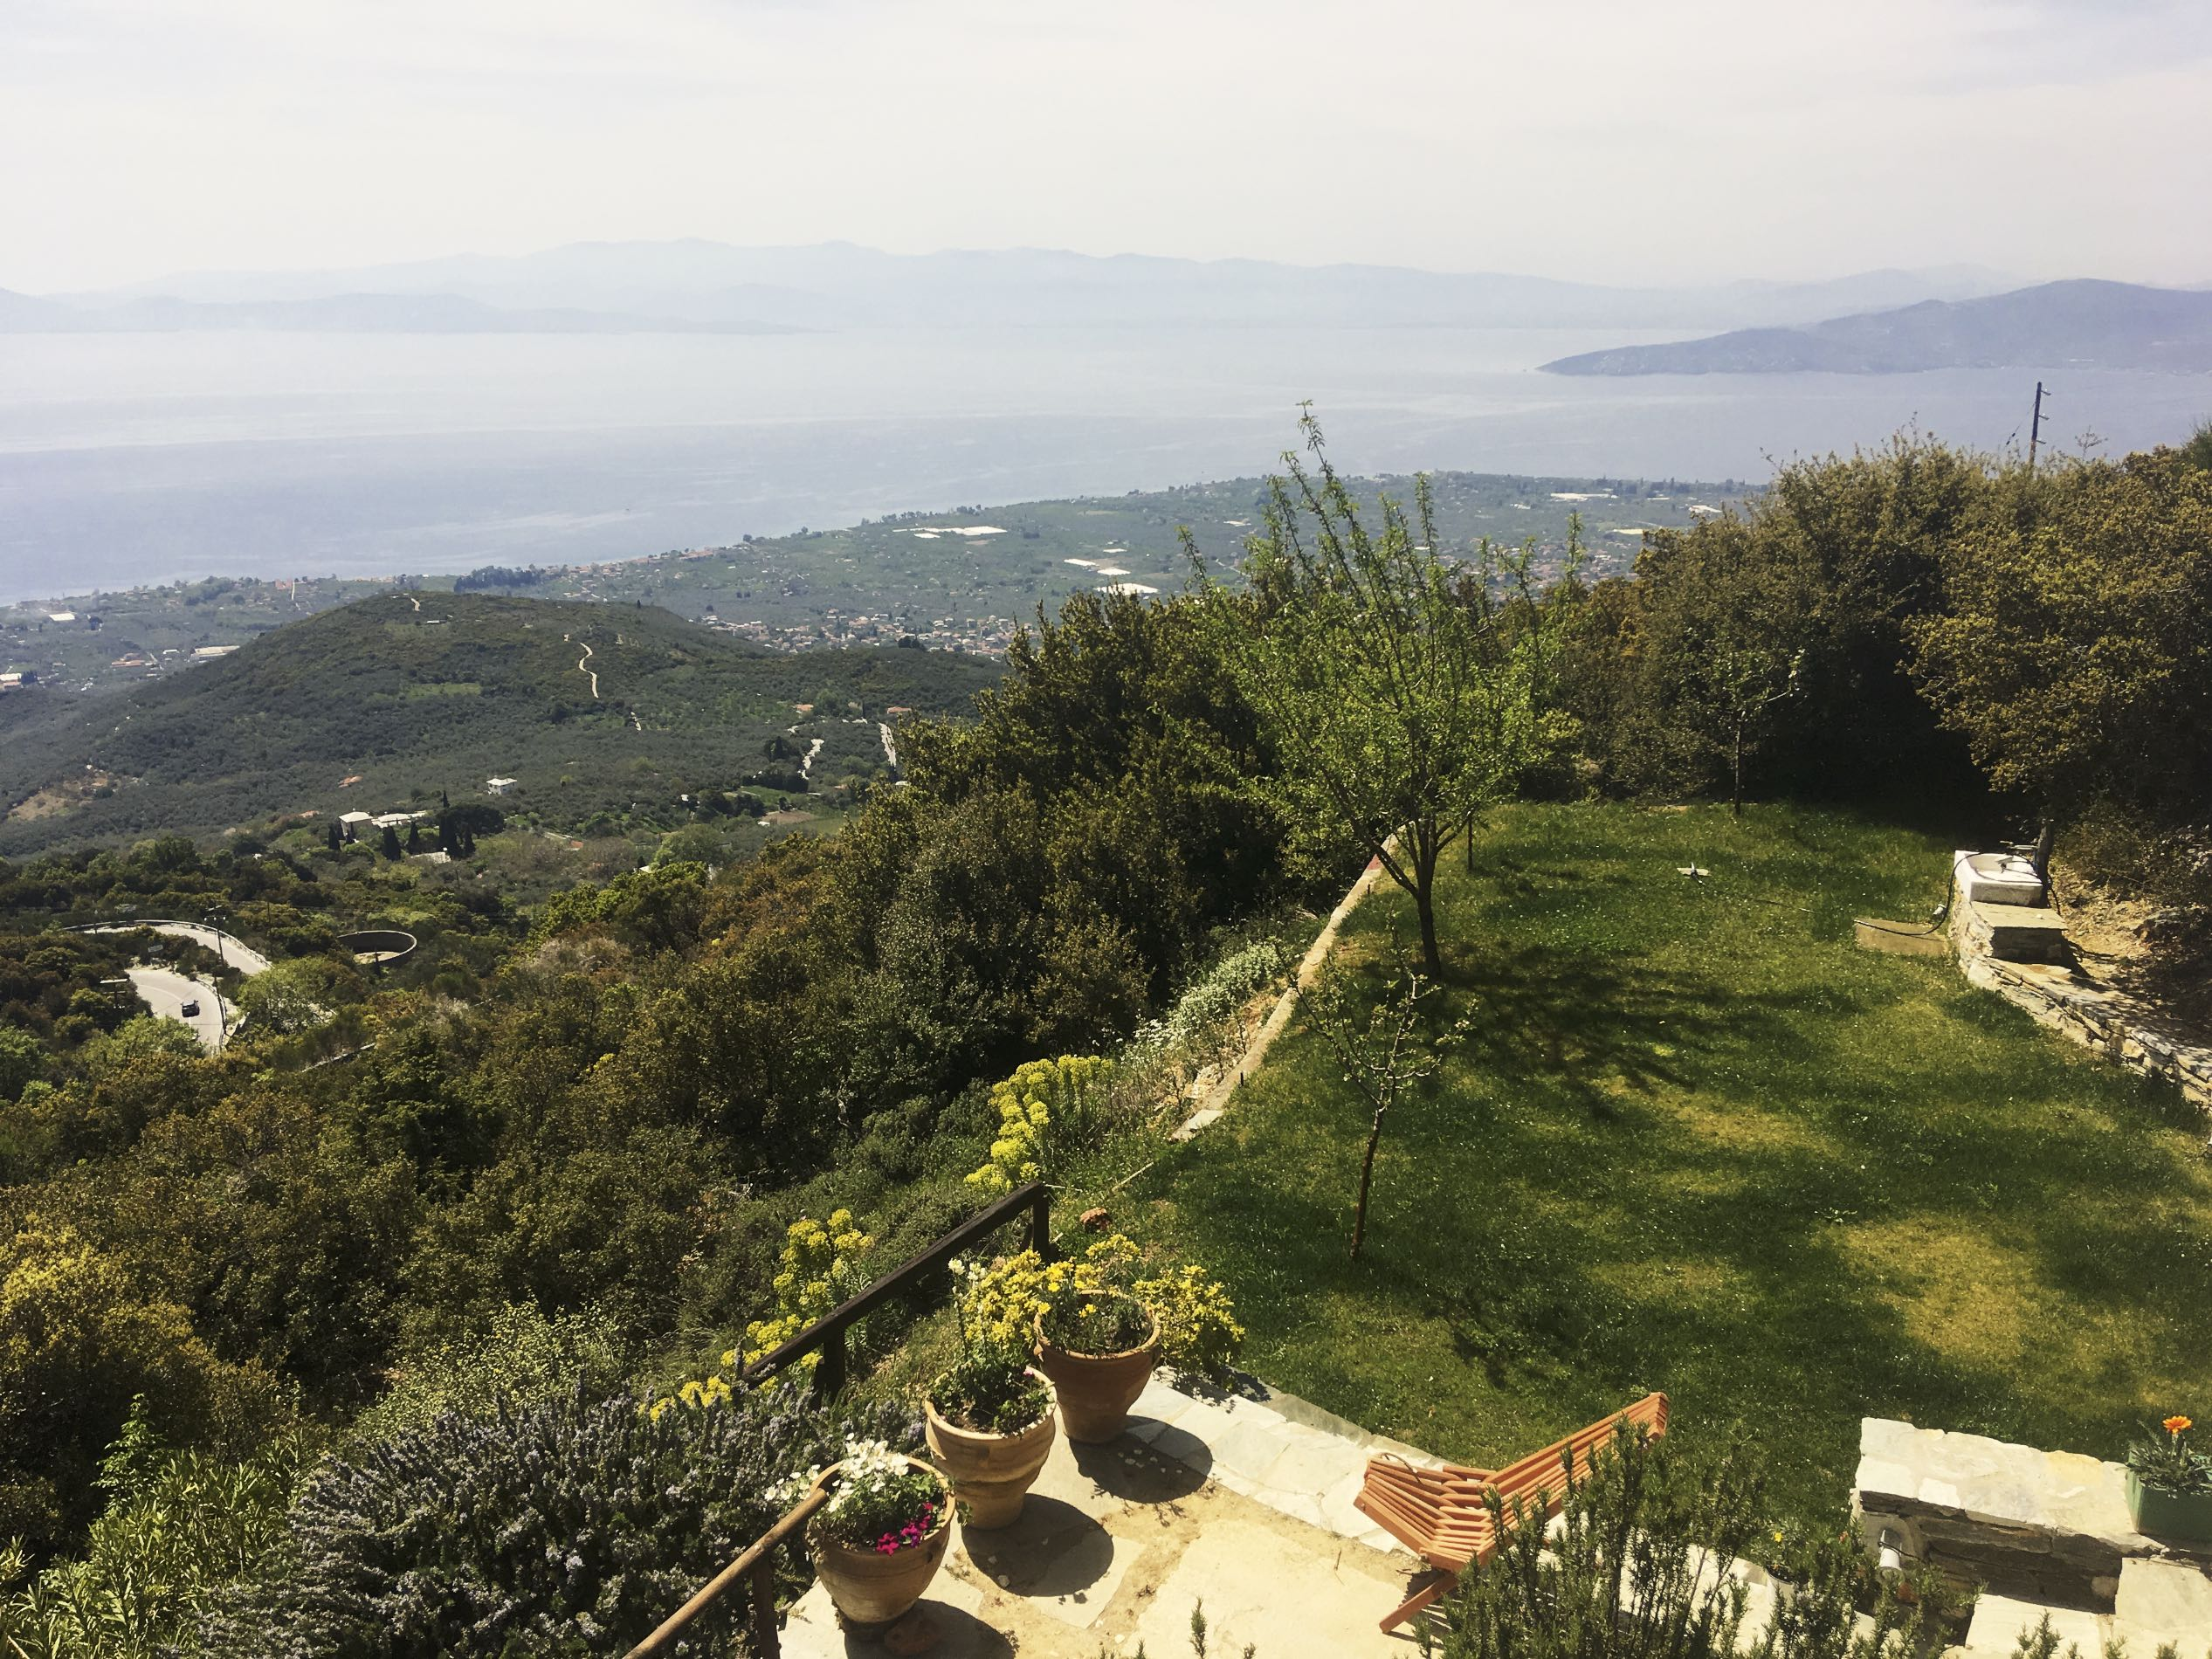 Property Image 2 - Great Hilltop Villa with Wondrous 360 View of Nature